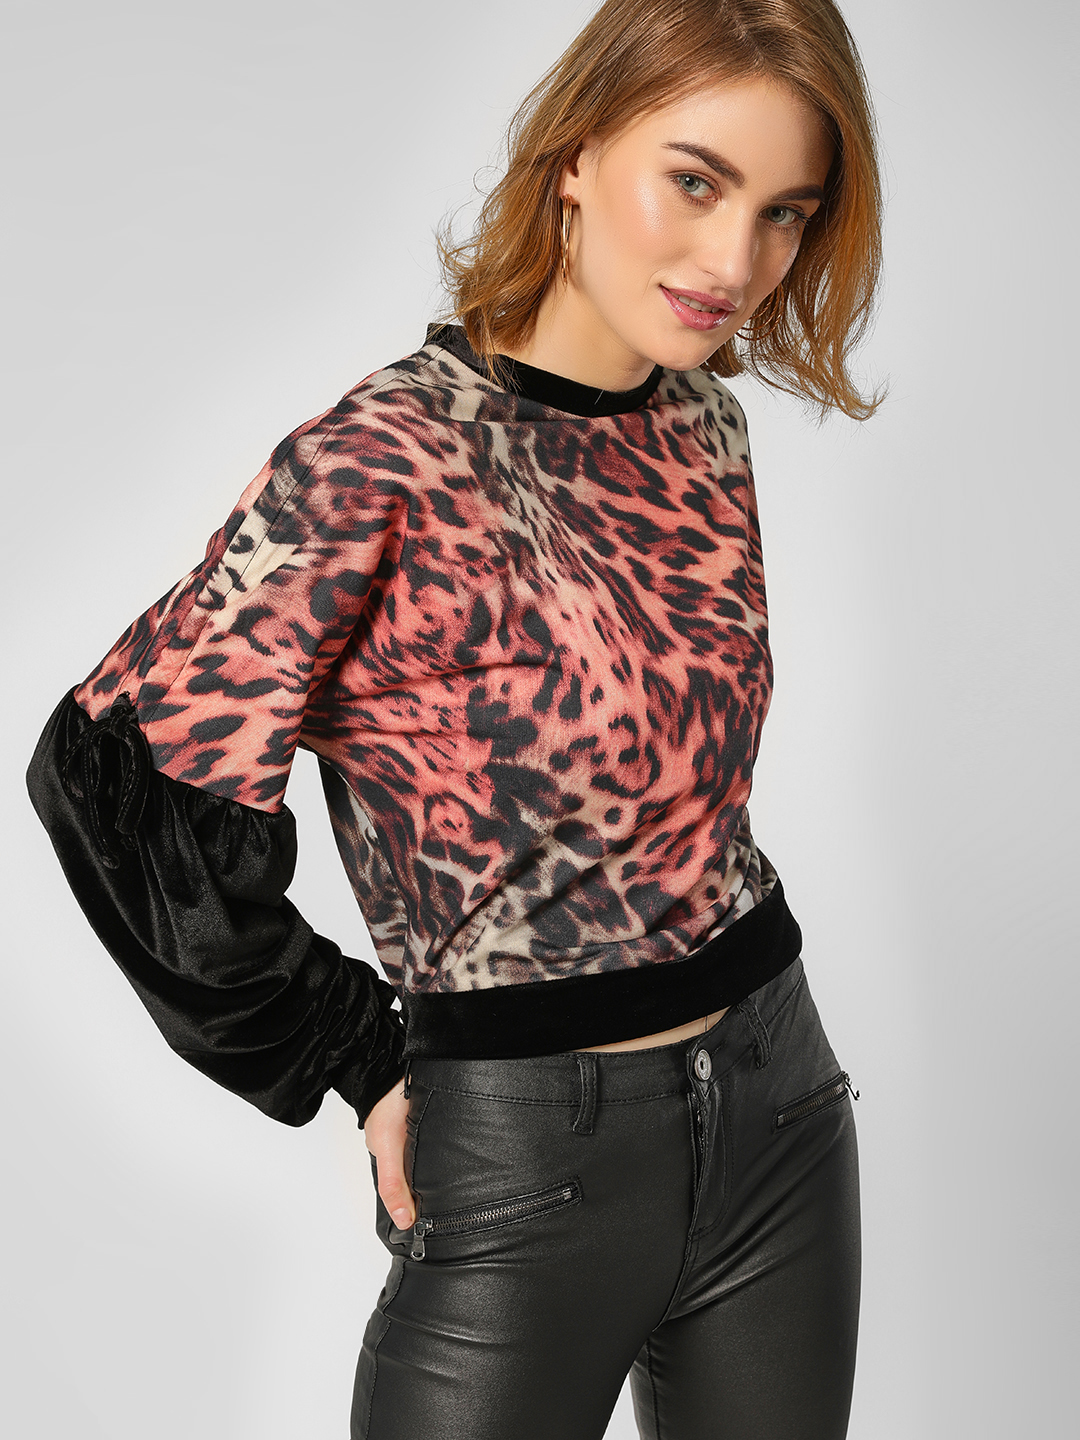 All Good Things Multi Leopard Print Sweatshirt 1